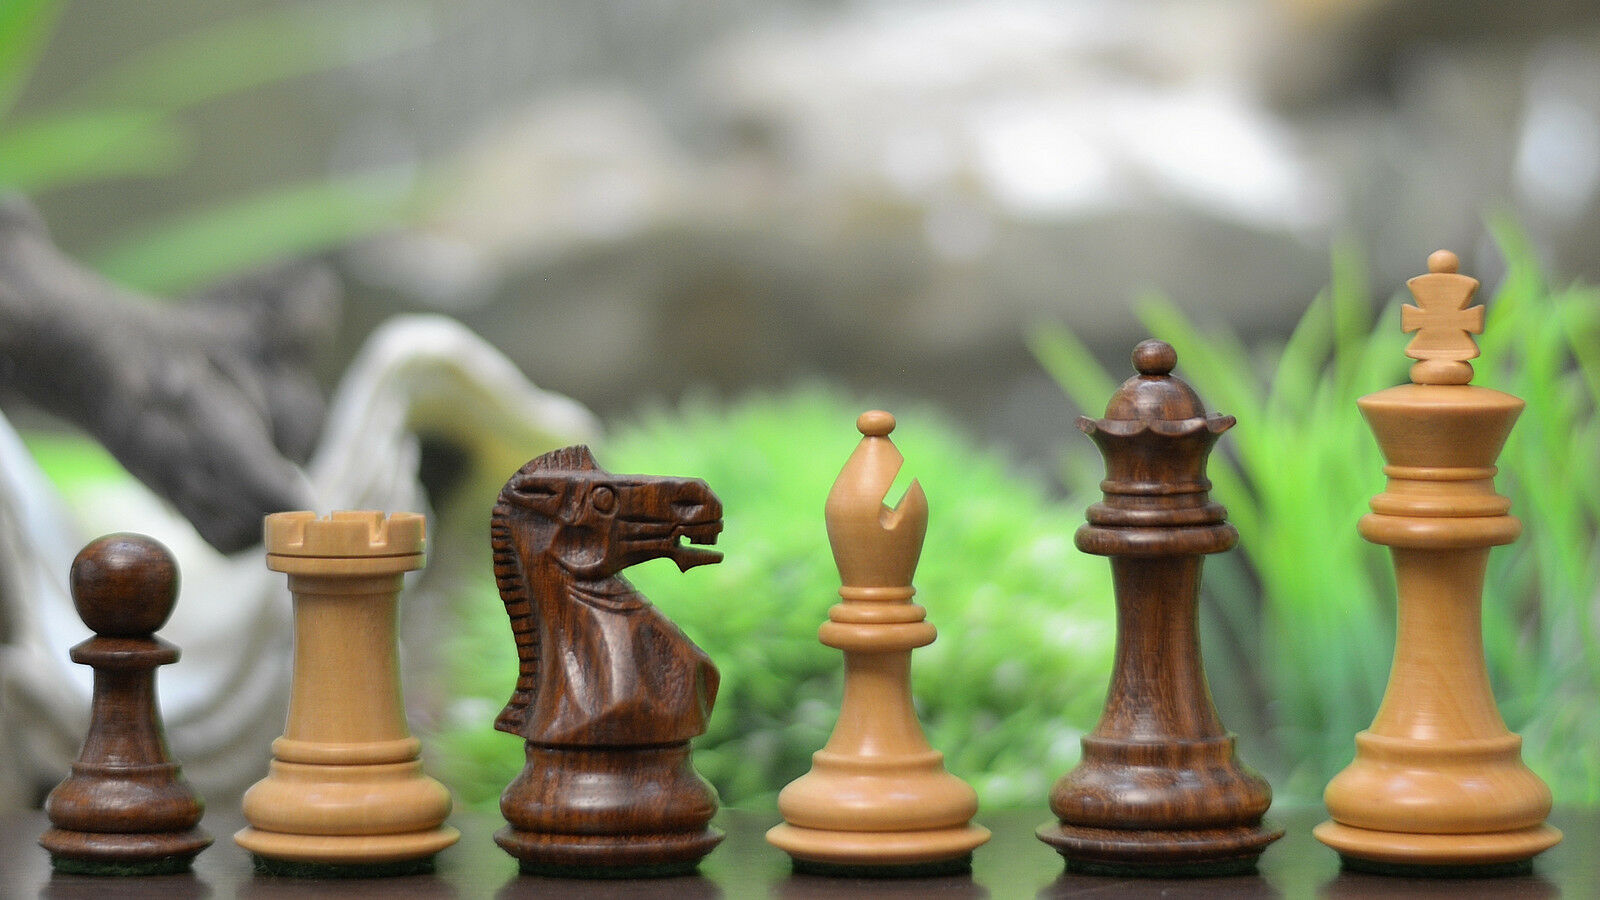 The Collector Series Wooden Staunton Chess Pieces in Sheesham & Box Wood - 2.6